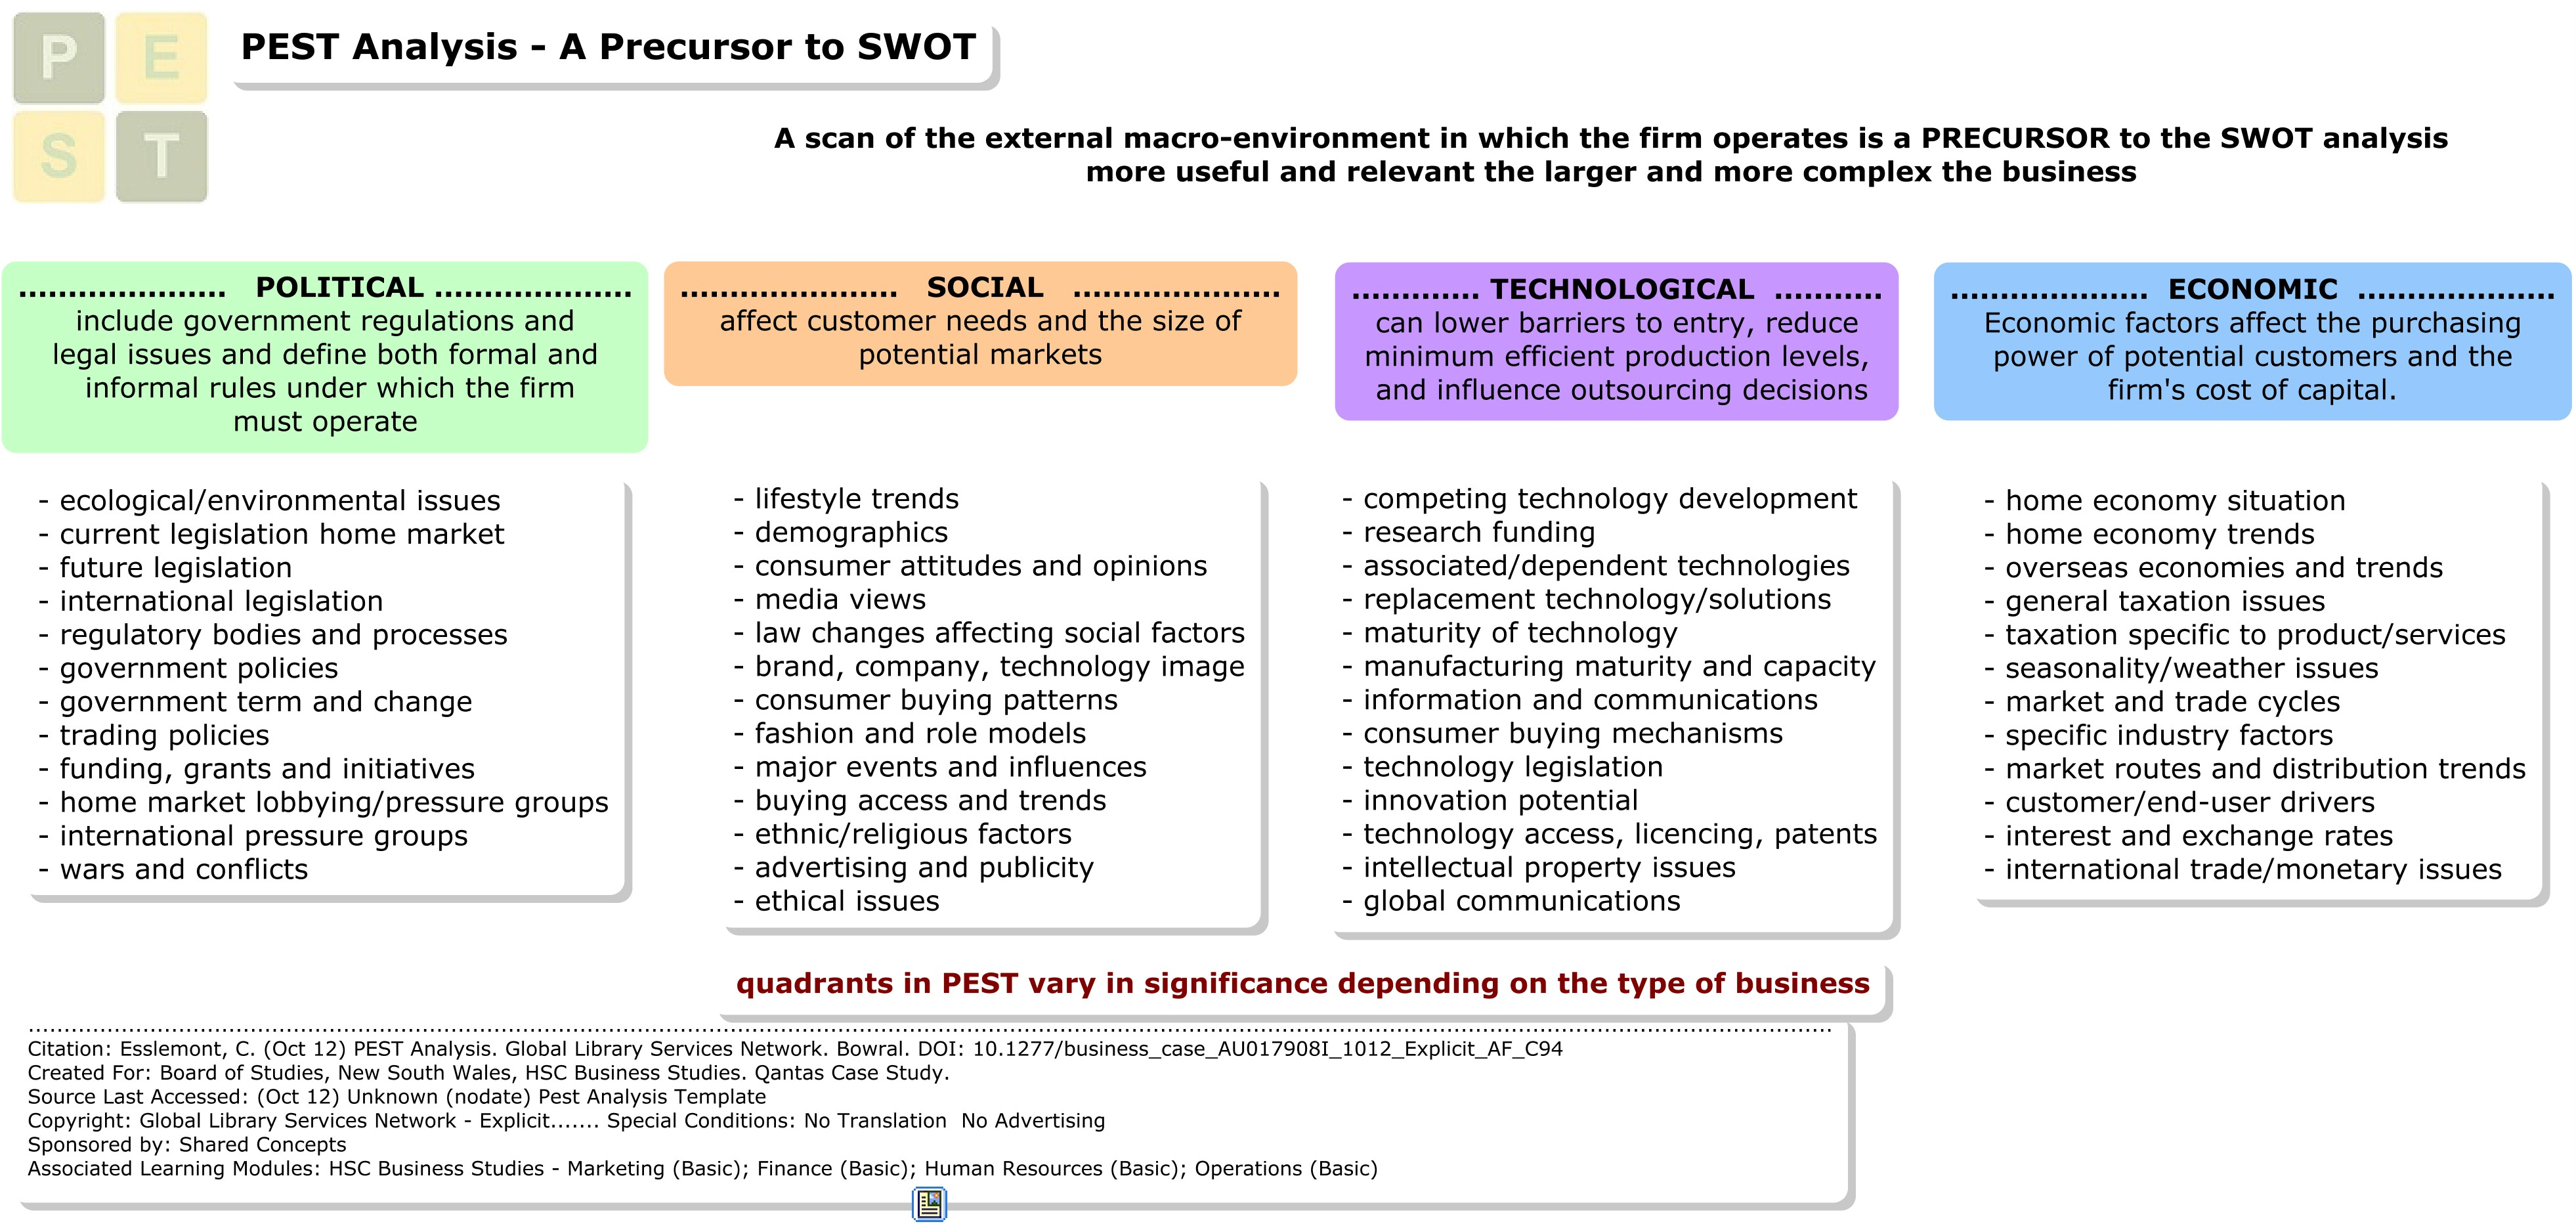 cadbury swot analysis term paper